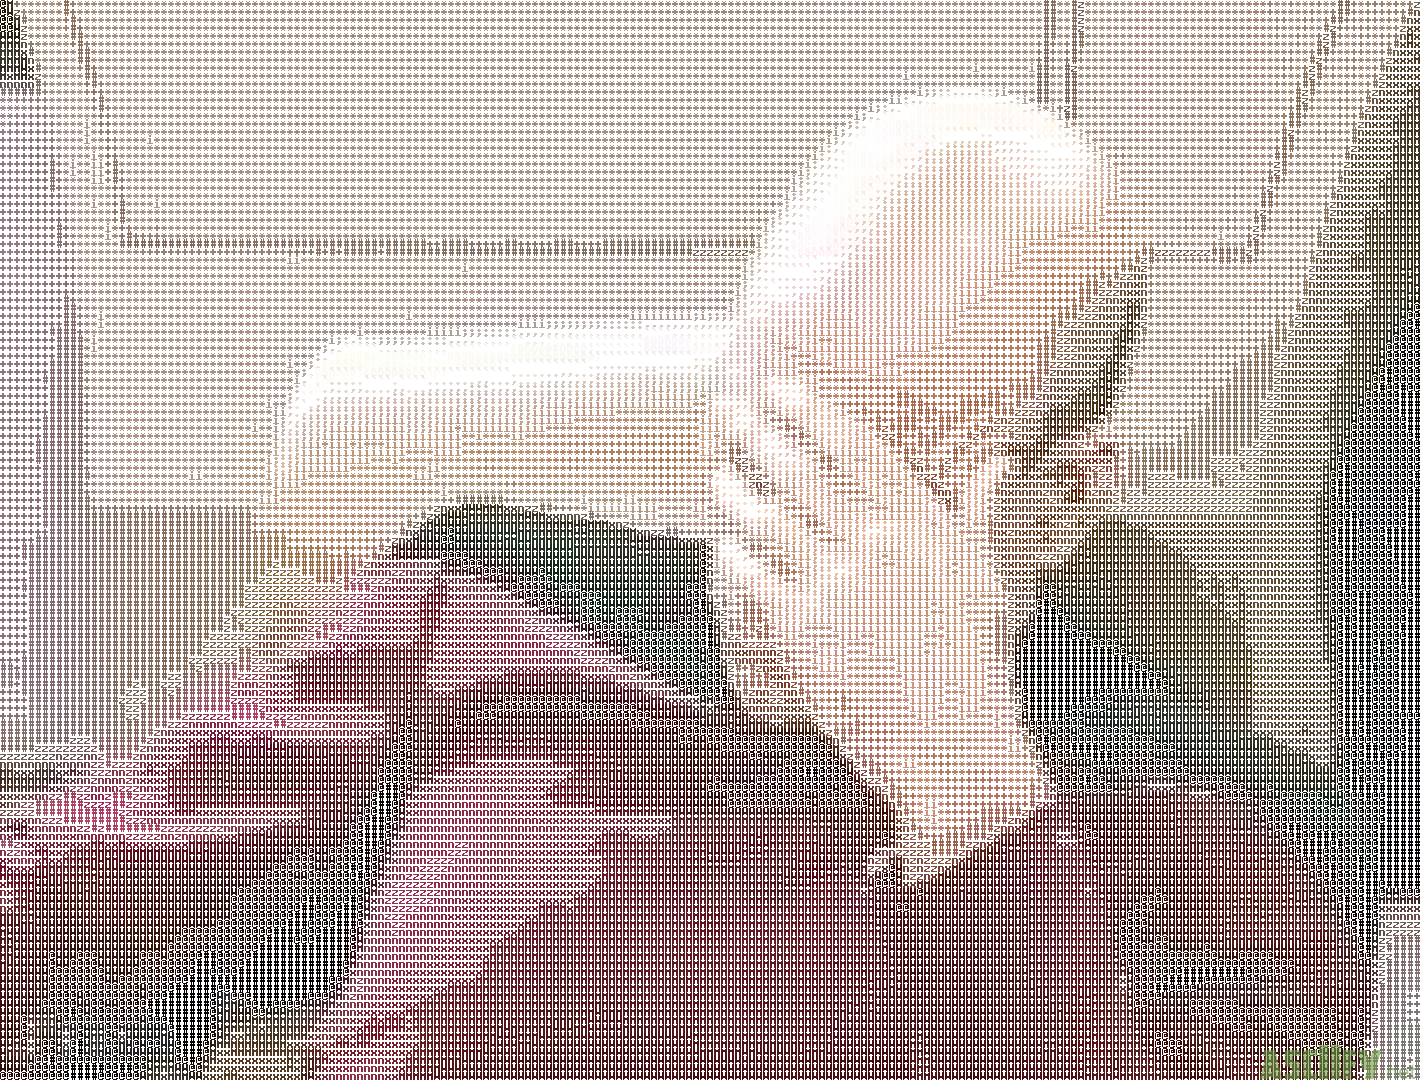 Captain picard is bothered